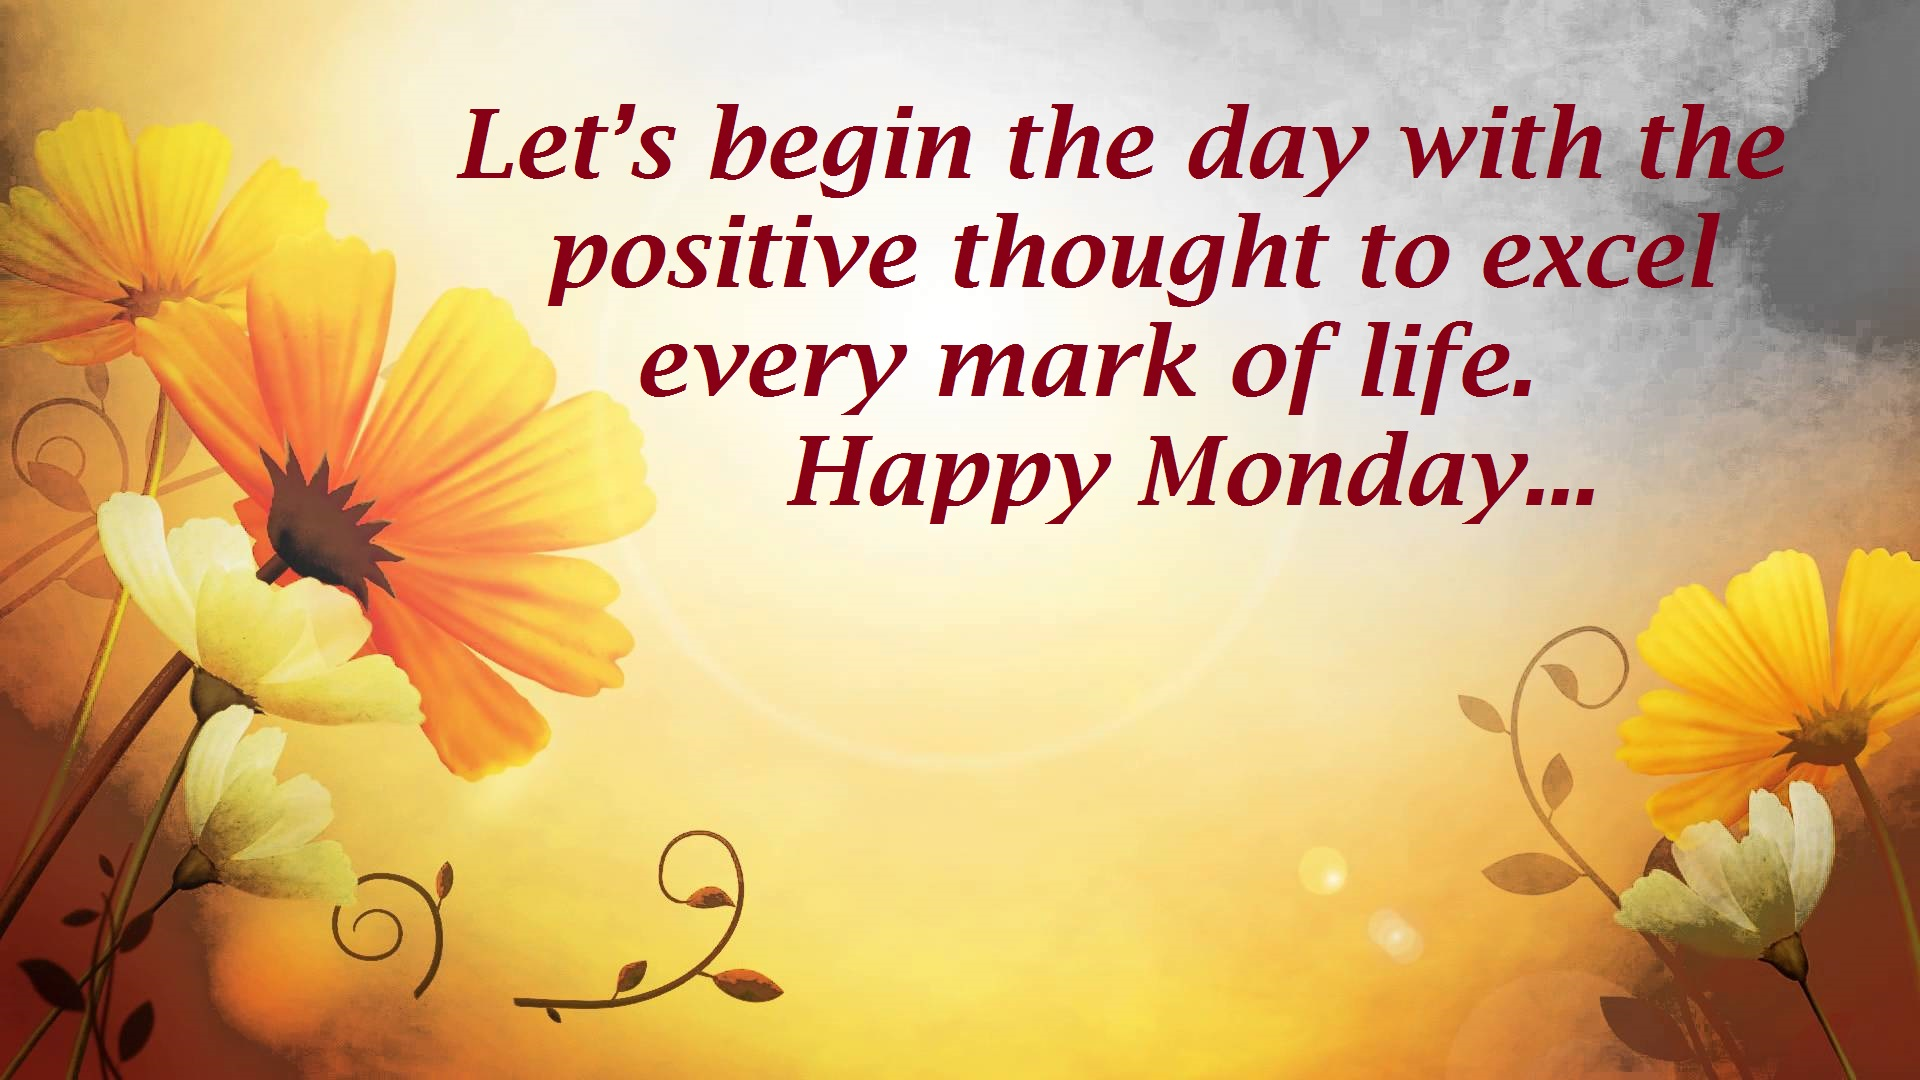 good morning happy monday images